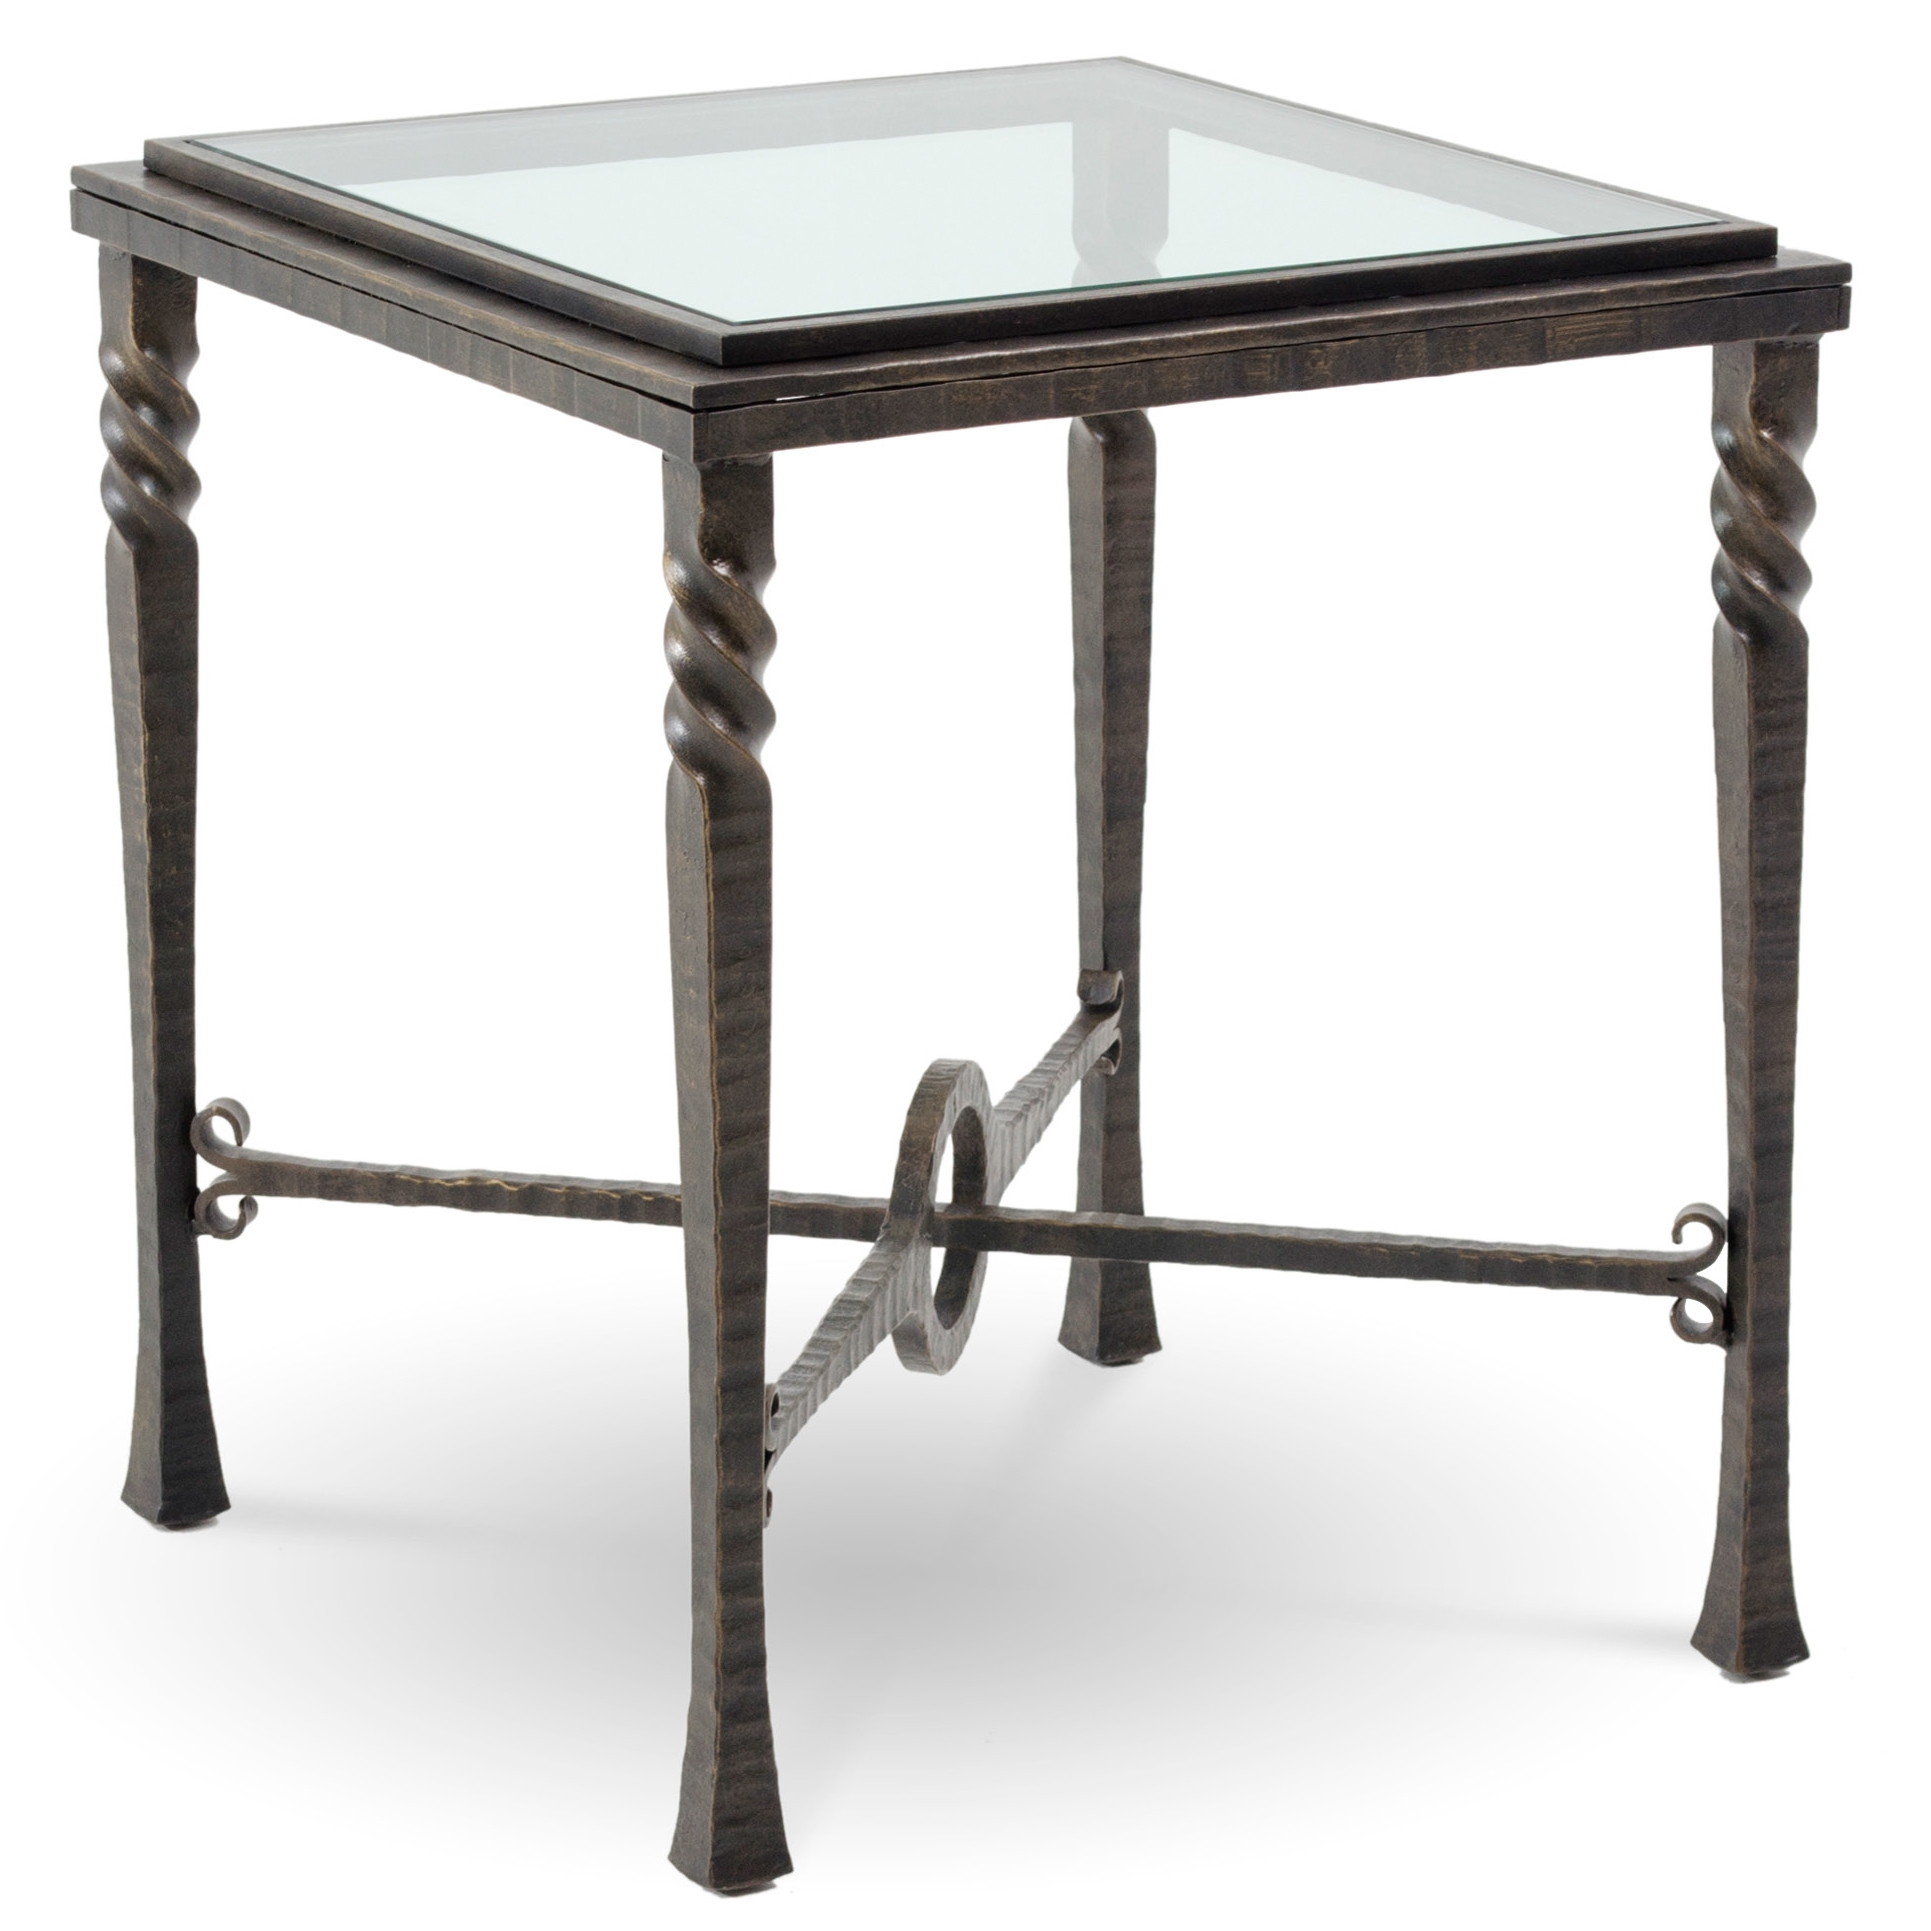 Omega Square End Table with Glass Top by Charleston Forge